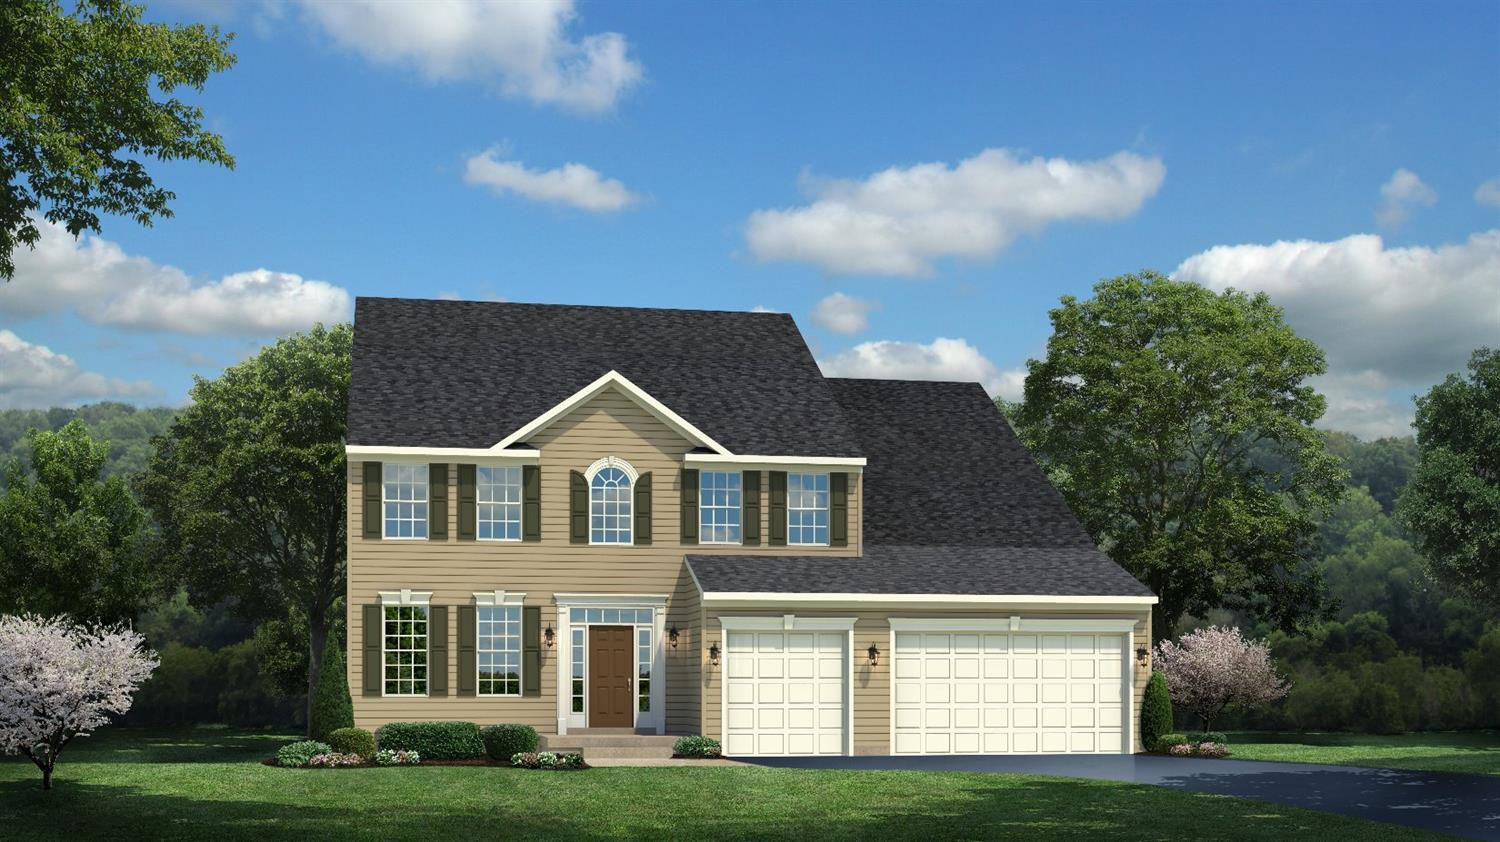 106 Clover Field Dr Miami Twp. (East), OH